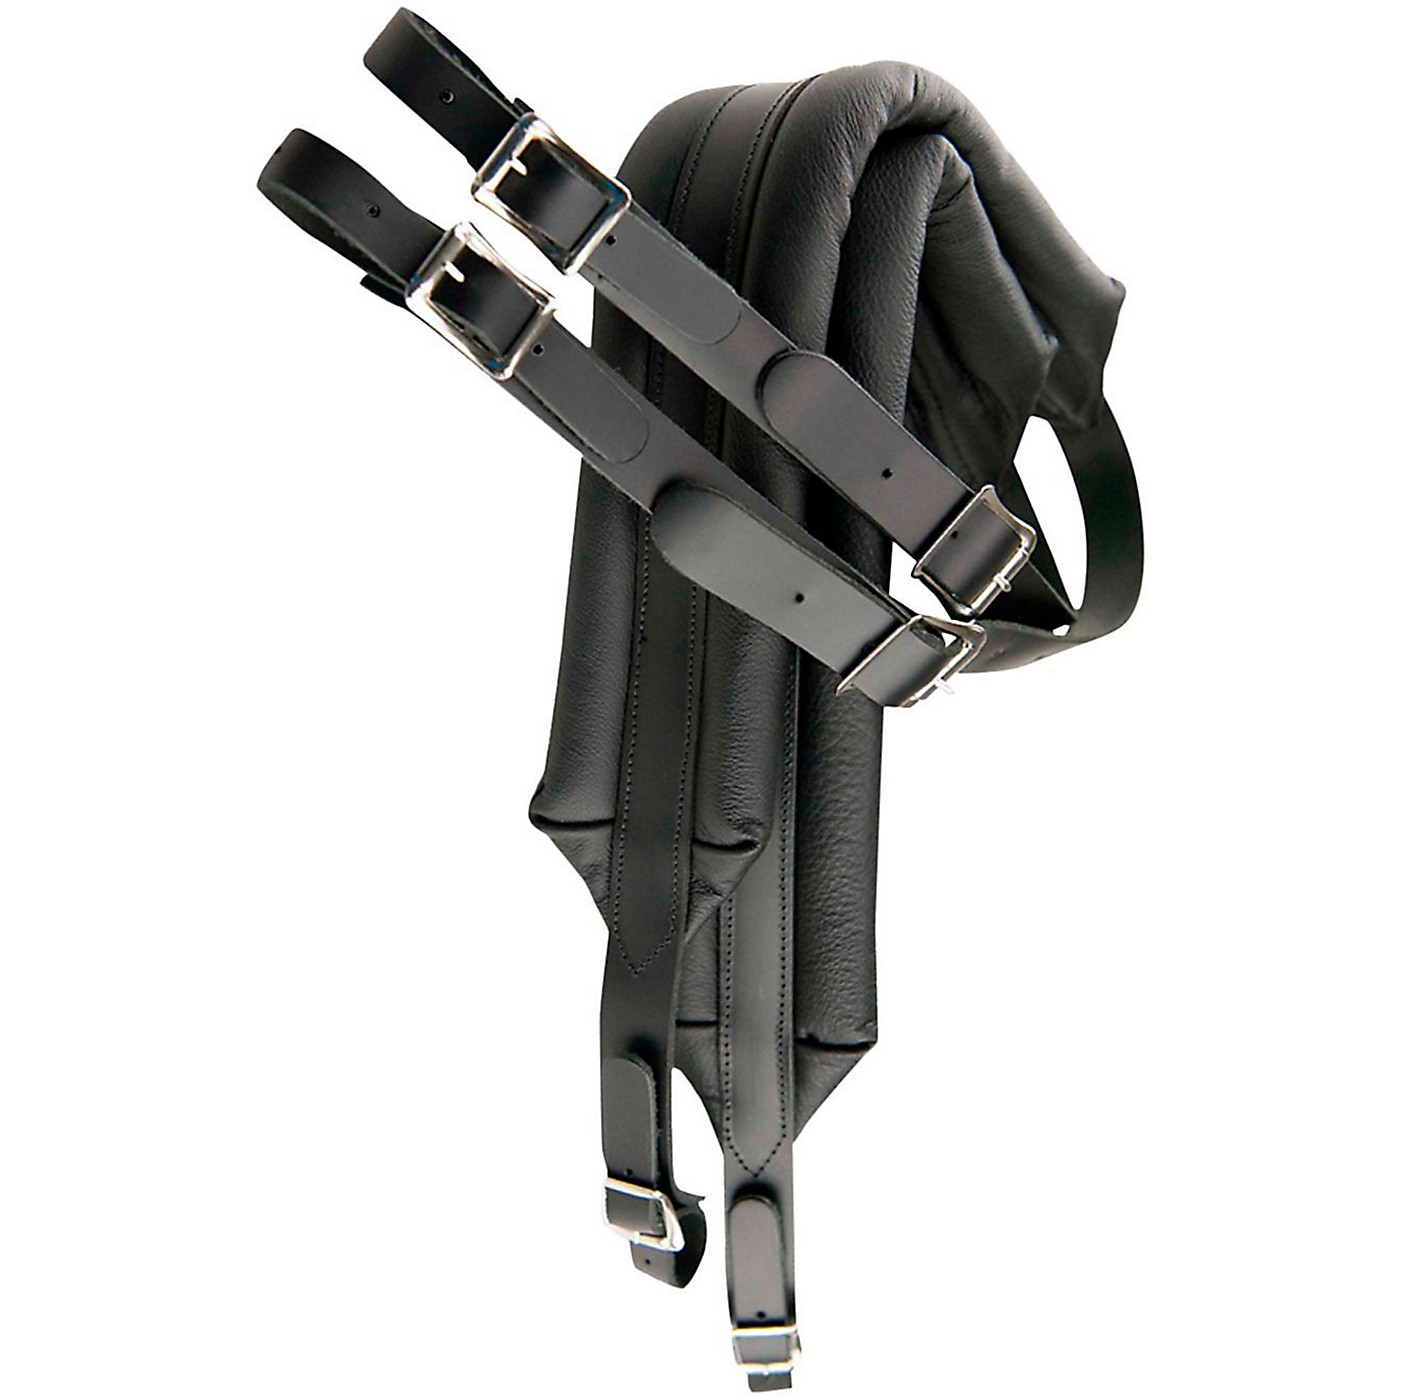 Perri's Deluxe Leather Accordion Strap with Metal Buckles thumbnail